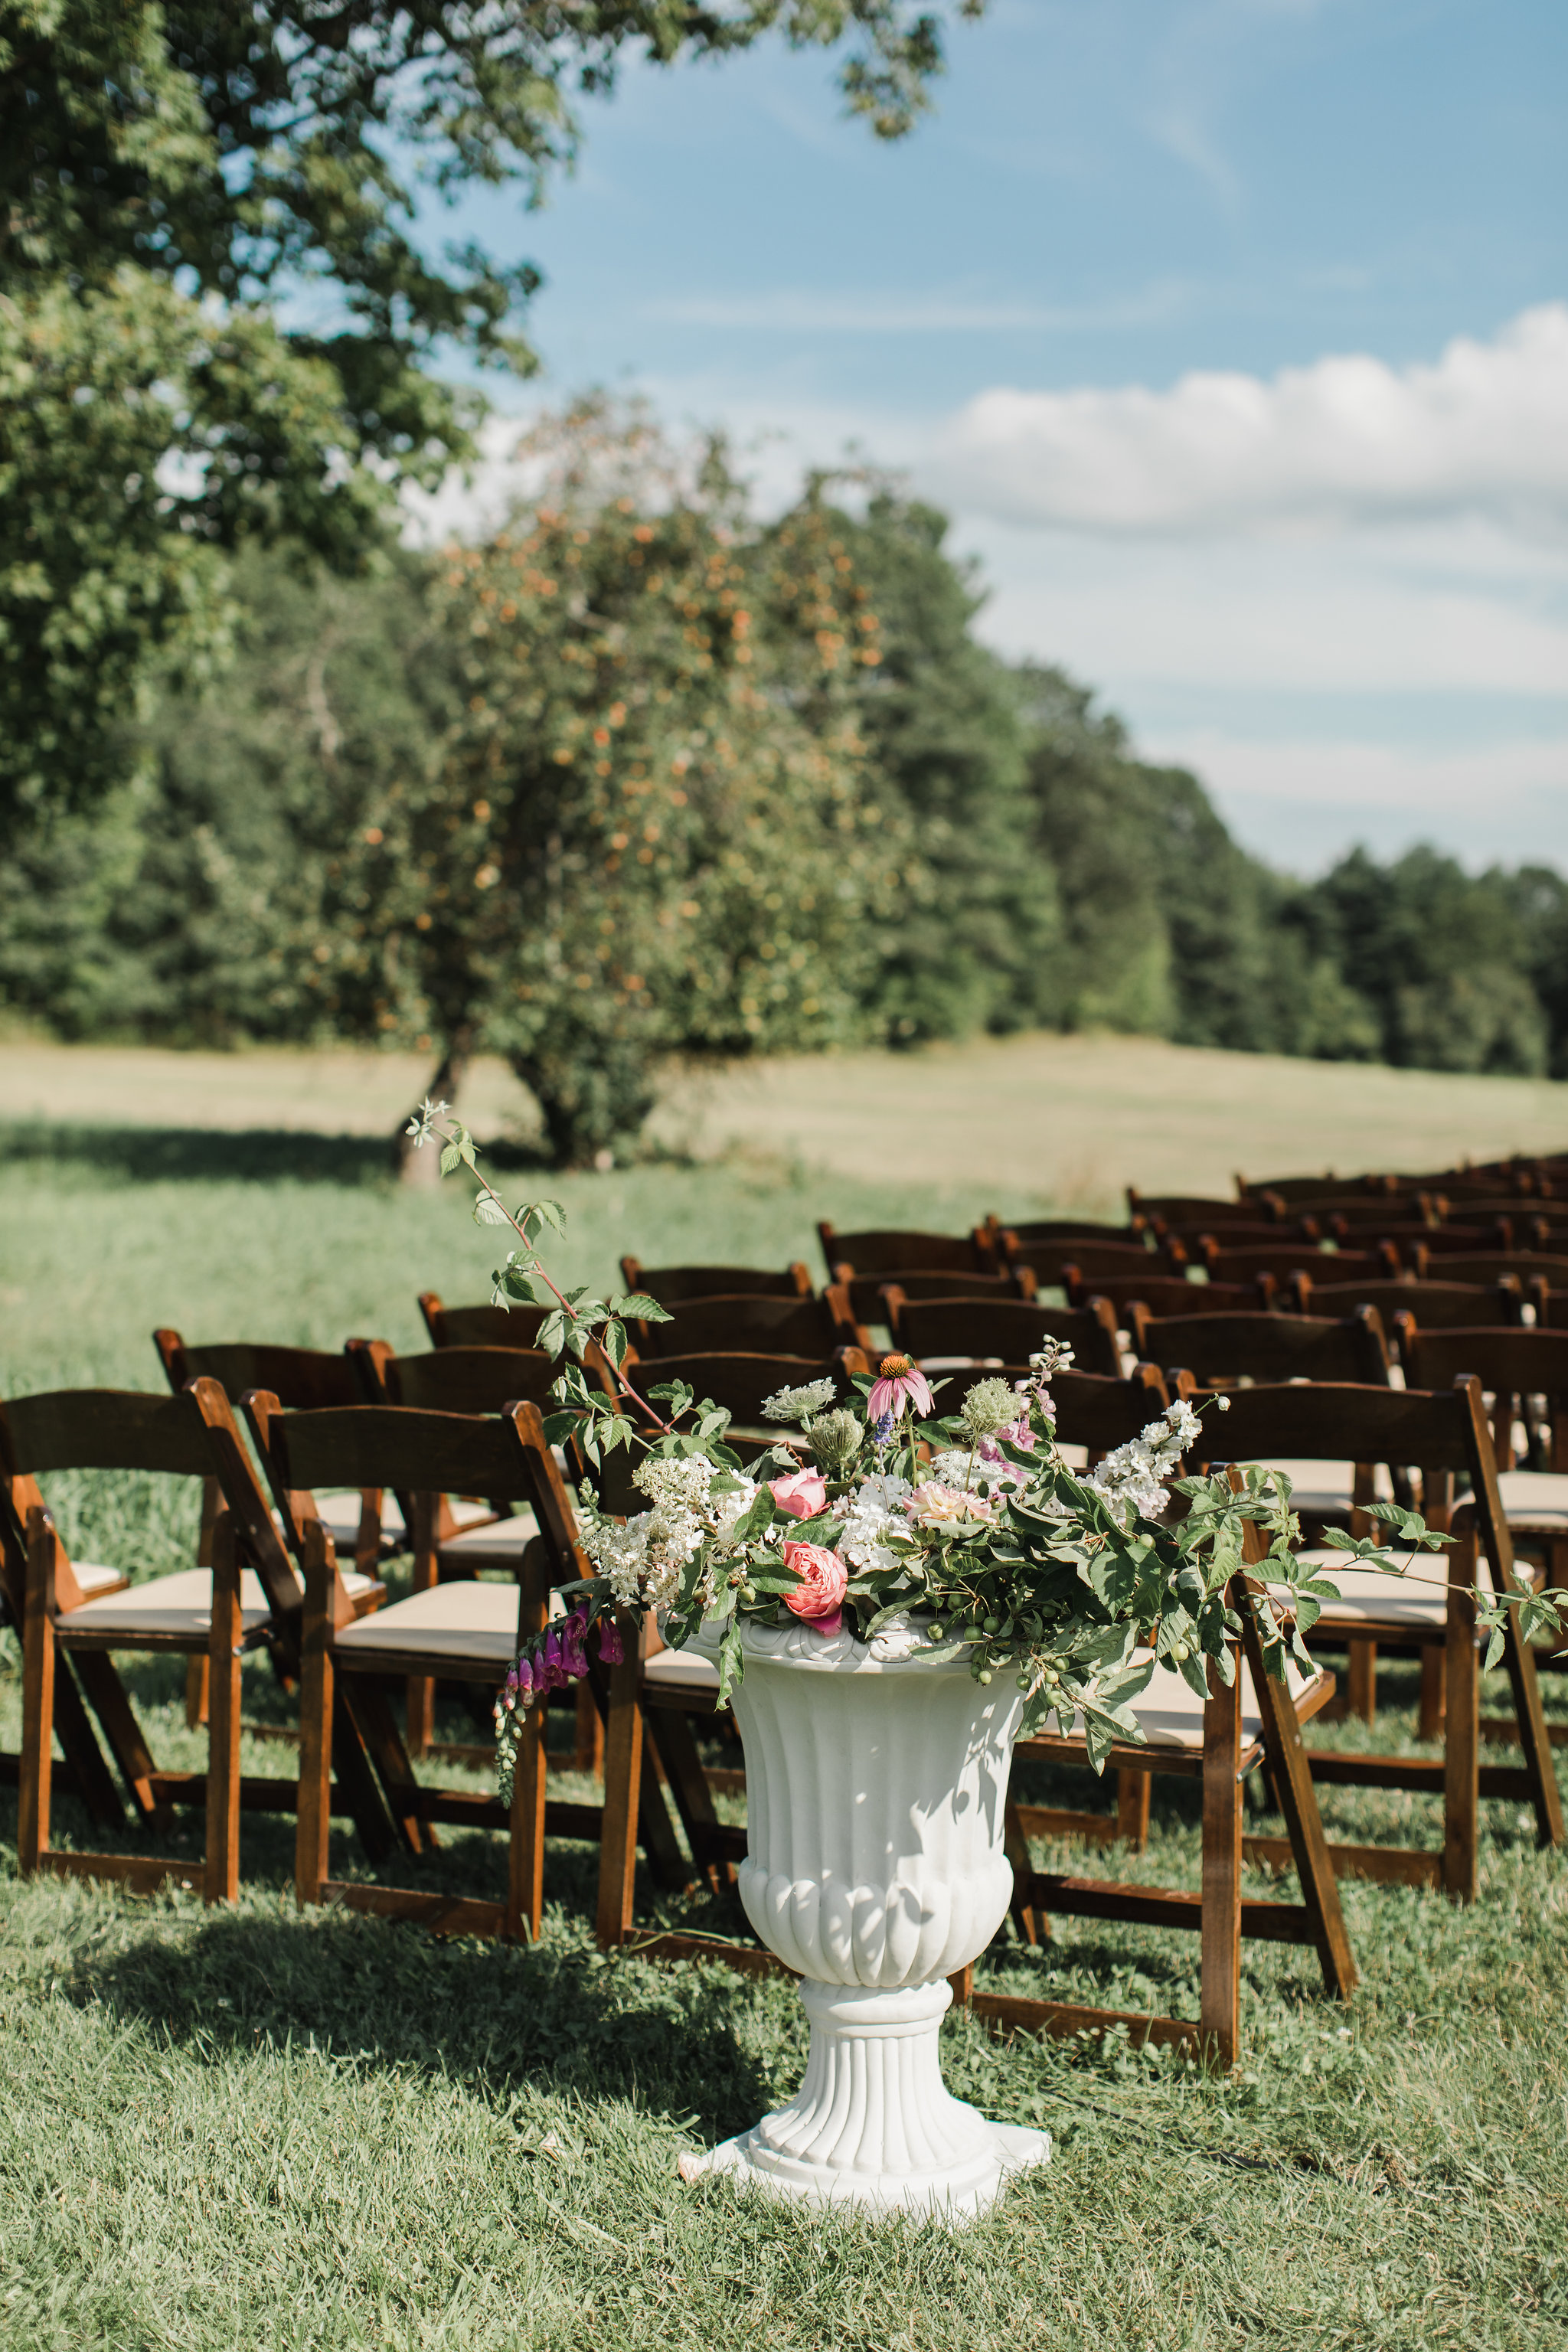 Watershed-Floral-Shady-Lane-Farm-Maine-Field-Ceremony-Wedding-5.jpg